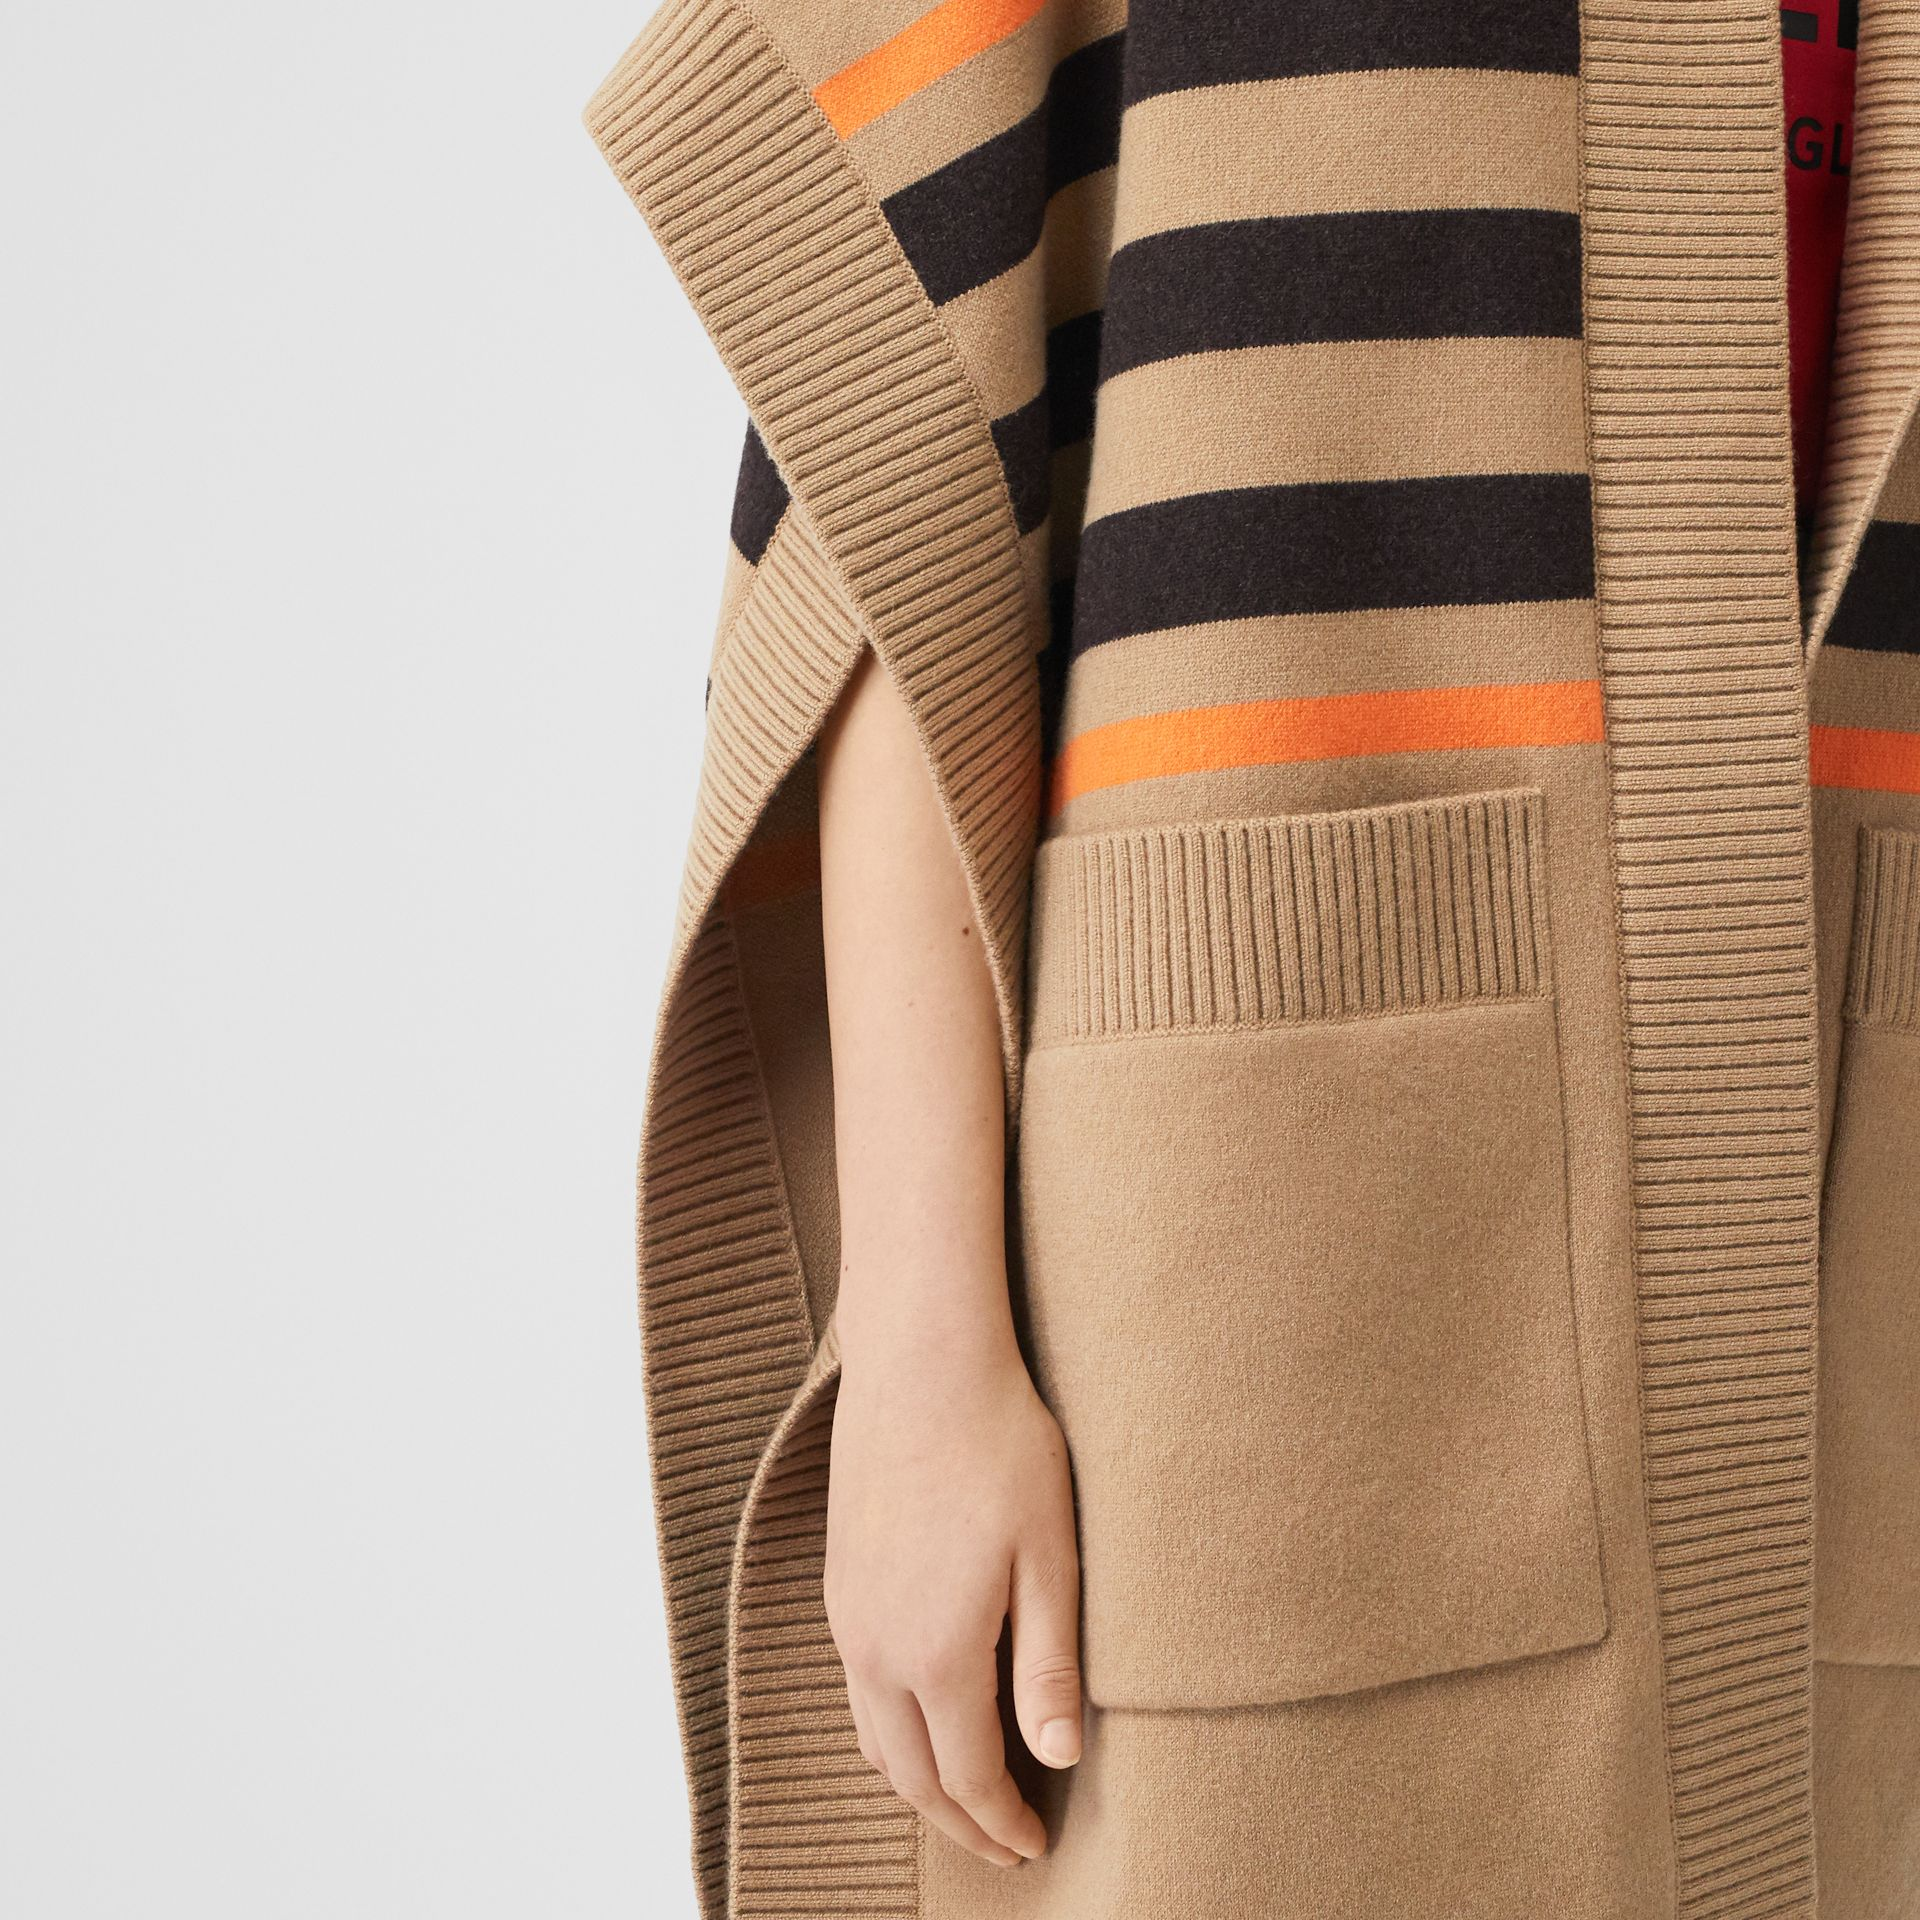 Monogram Motif Intarsia Wool Cashmere Blend Cape in Archive Beige - Women | Burberry United Kingdom - gallery image 4